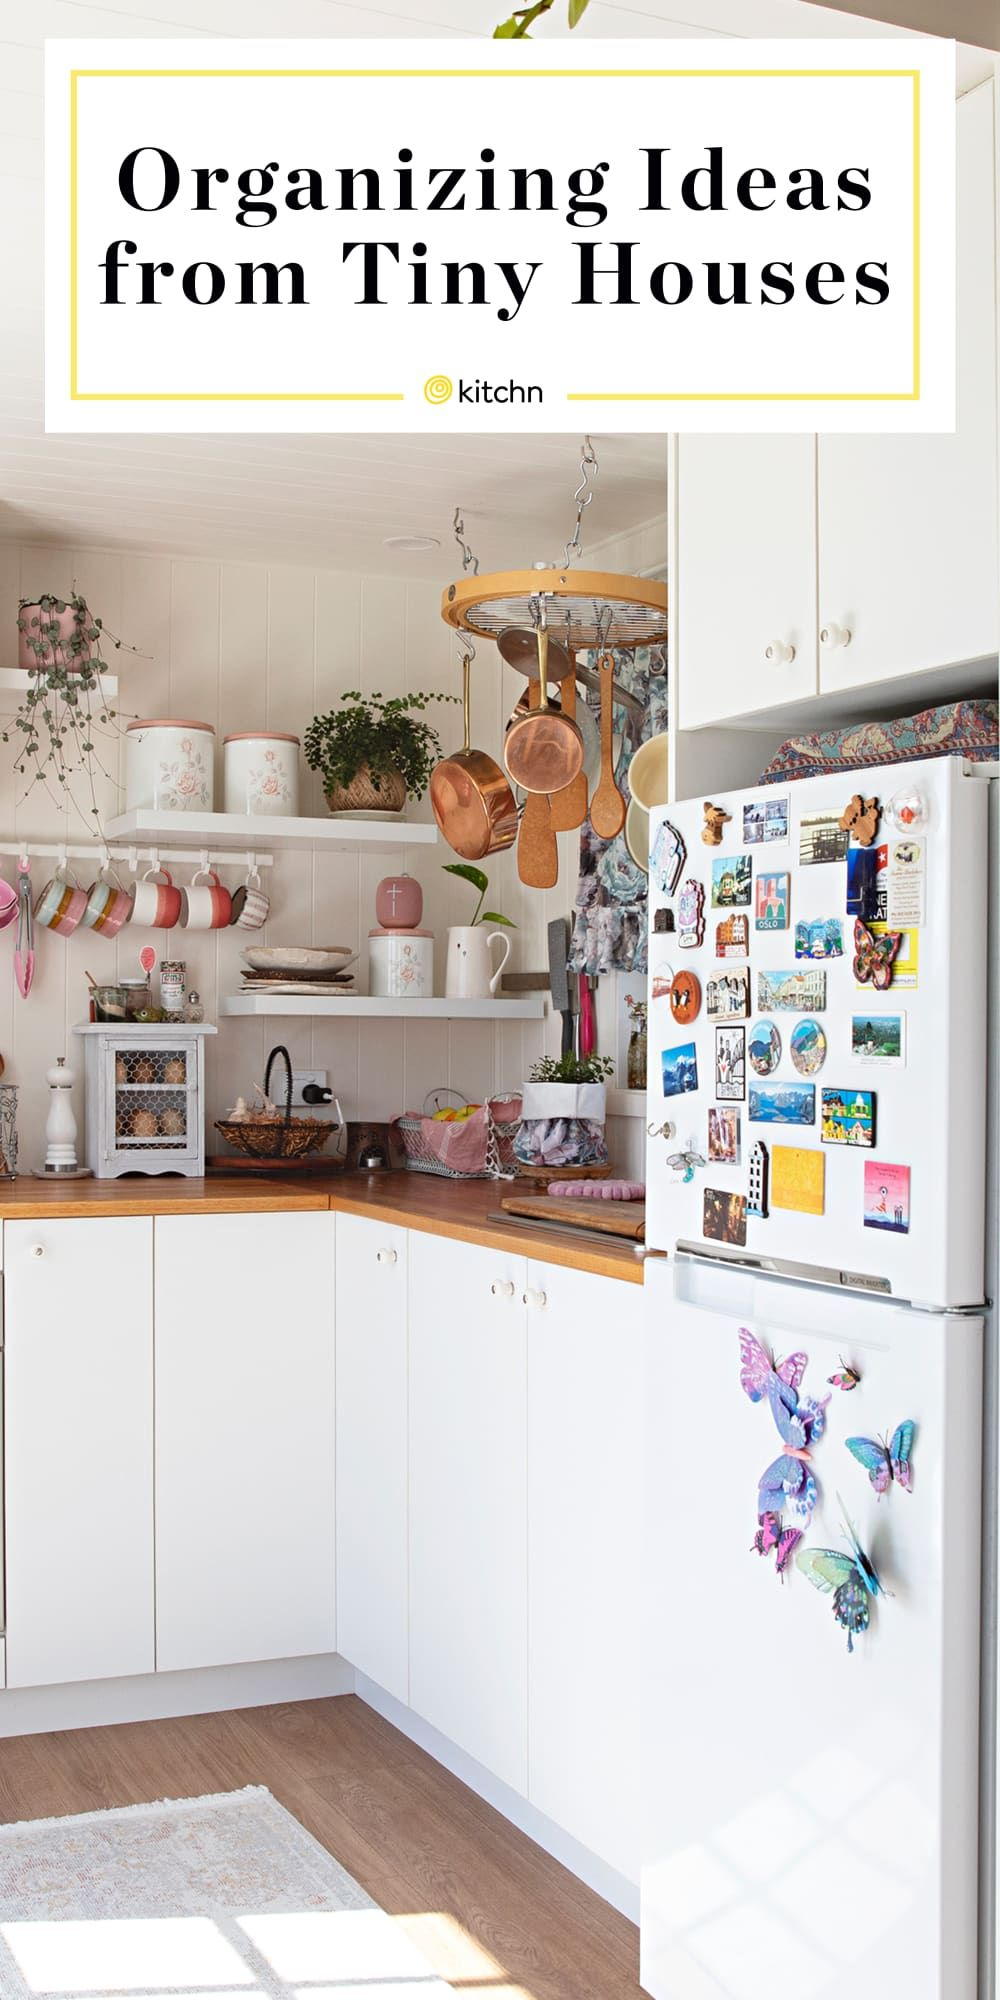 The 10 Best Organizing Ideas We Learned From Tiny Houses Tiny House Storage Tiny House Organization Tiny House Kitchen